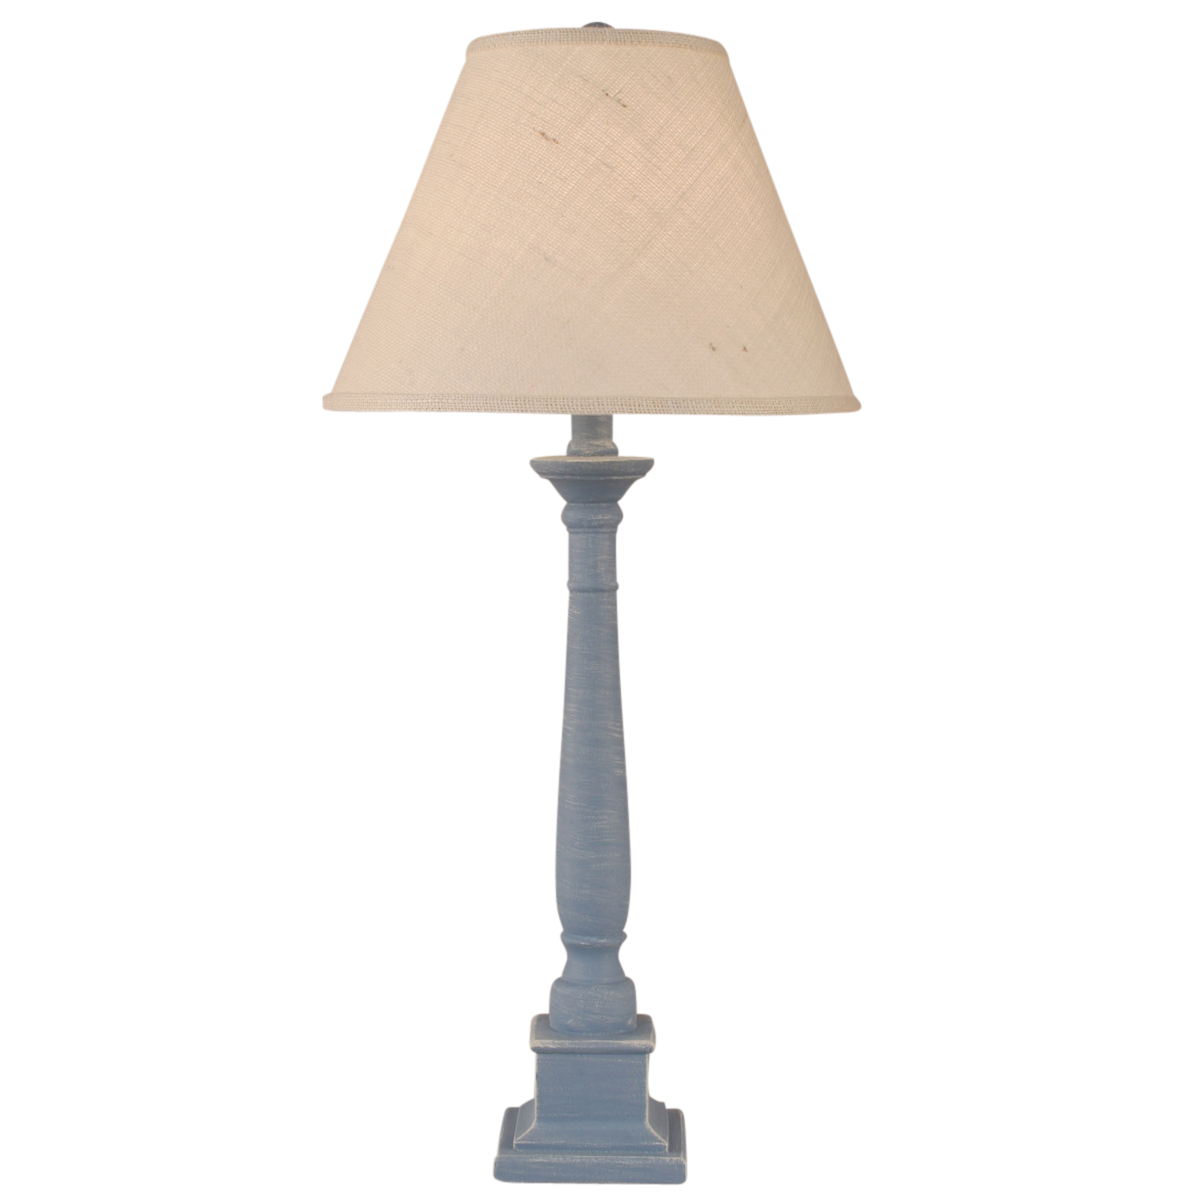 Wedgewood Blue Square Candlestick Table Lamp